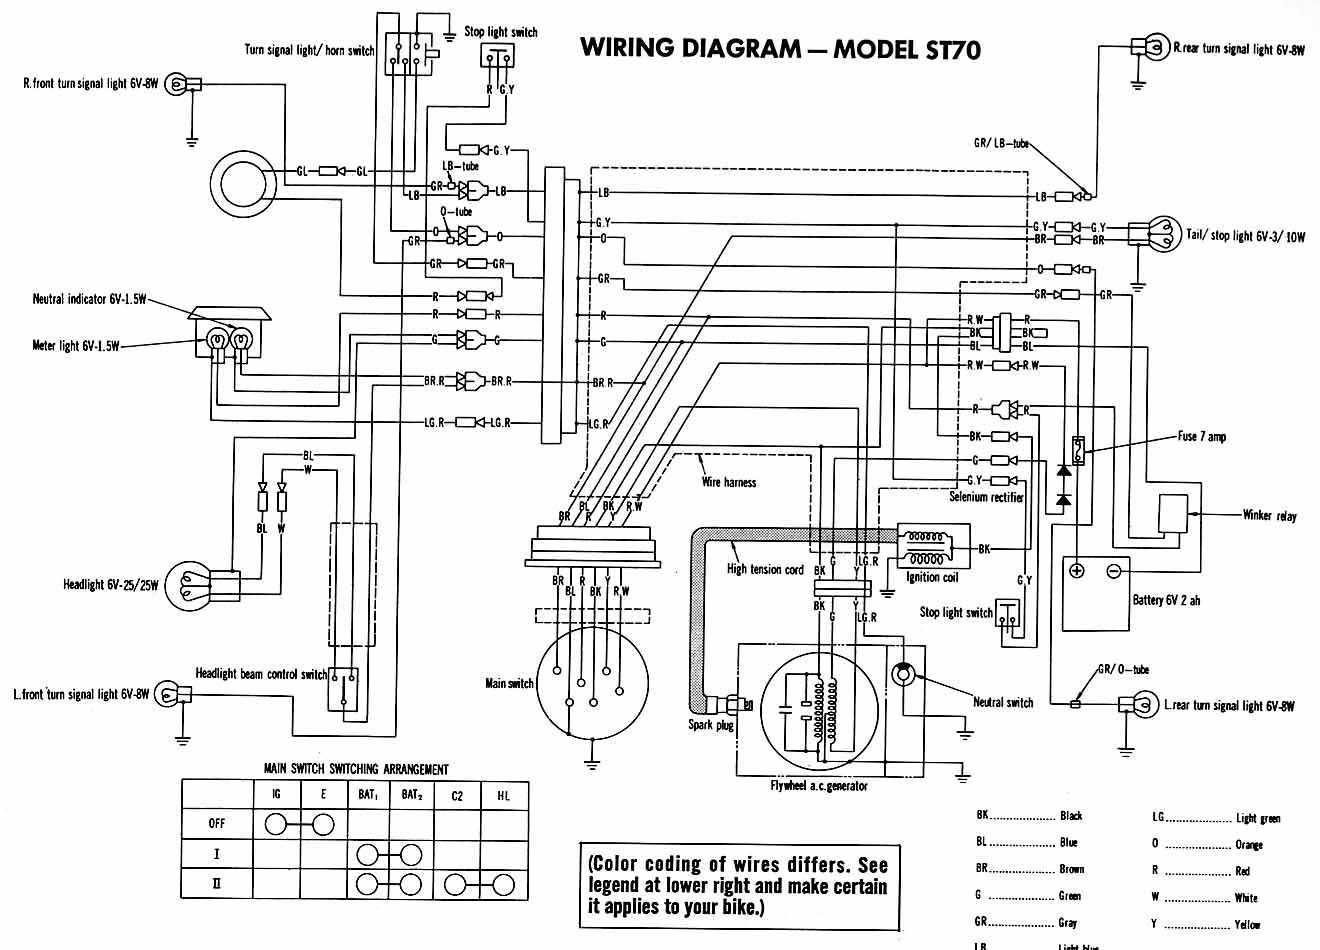 Free Honda Scooter Wiring Diagram Circuit And Hub 70 Smart Diagrams 2004 Cr V Fuse Box Engine Image C70 Stator